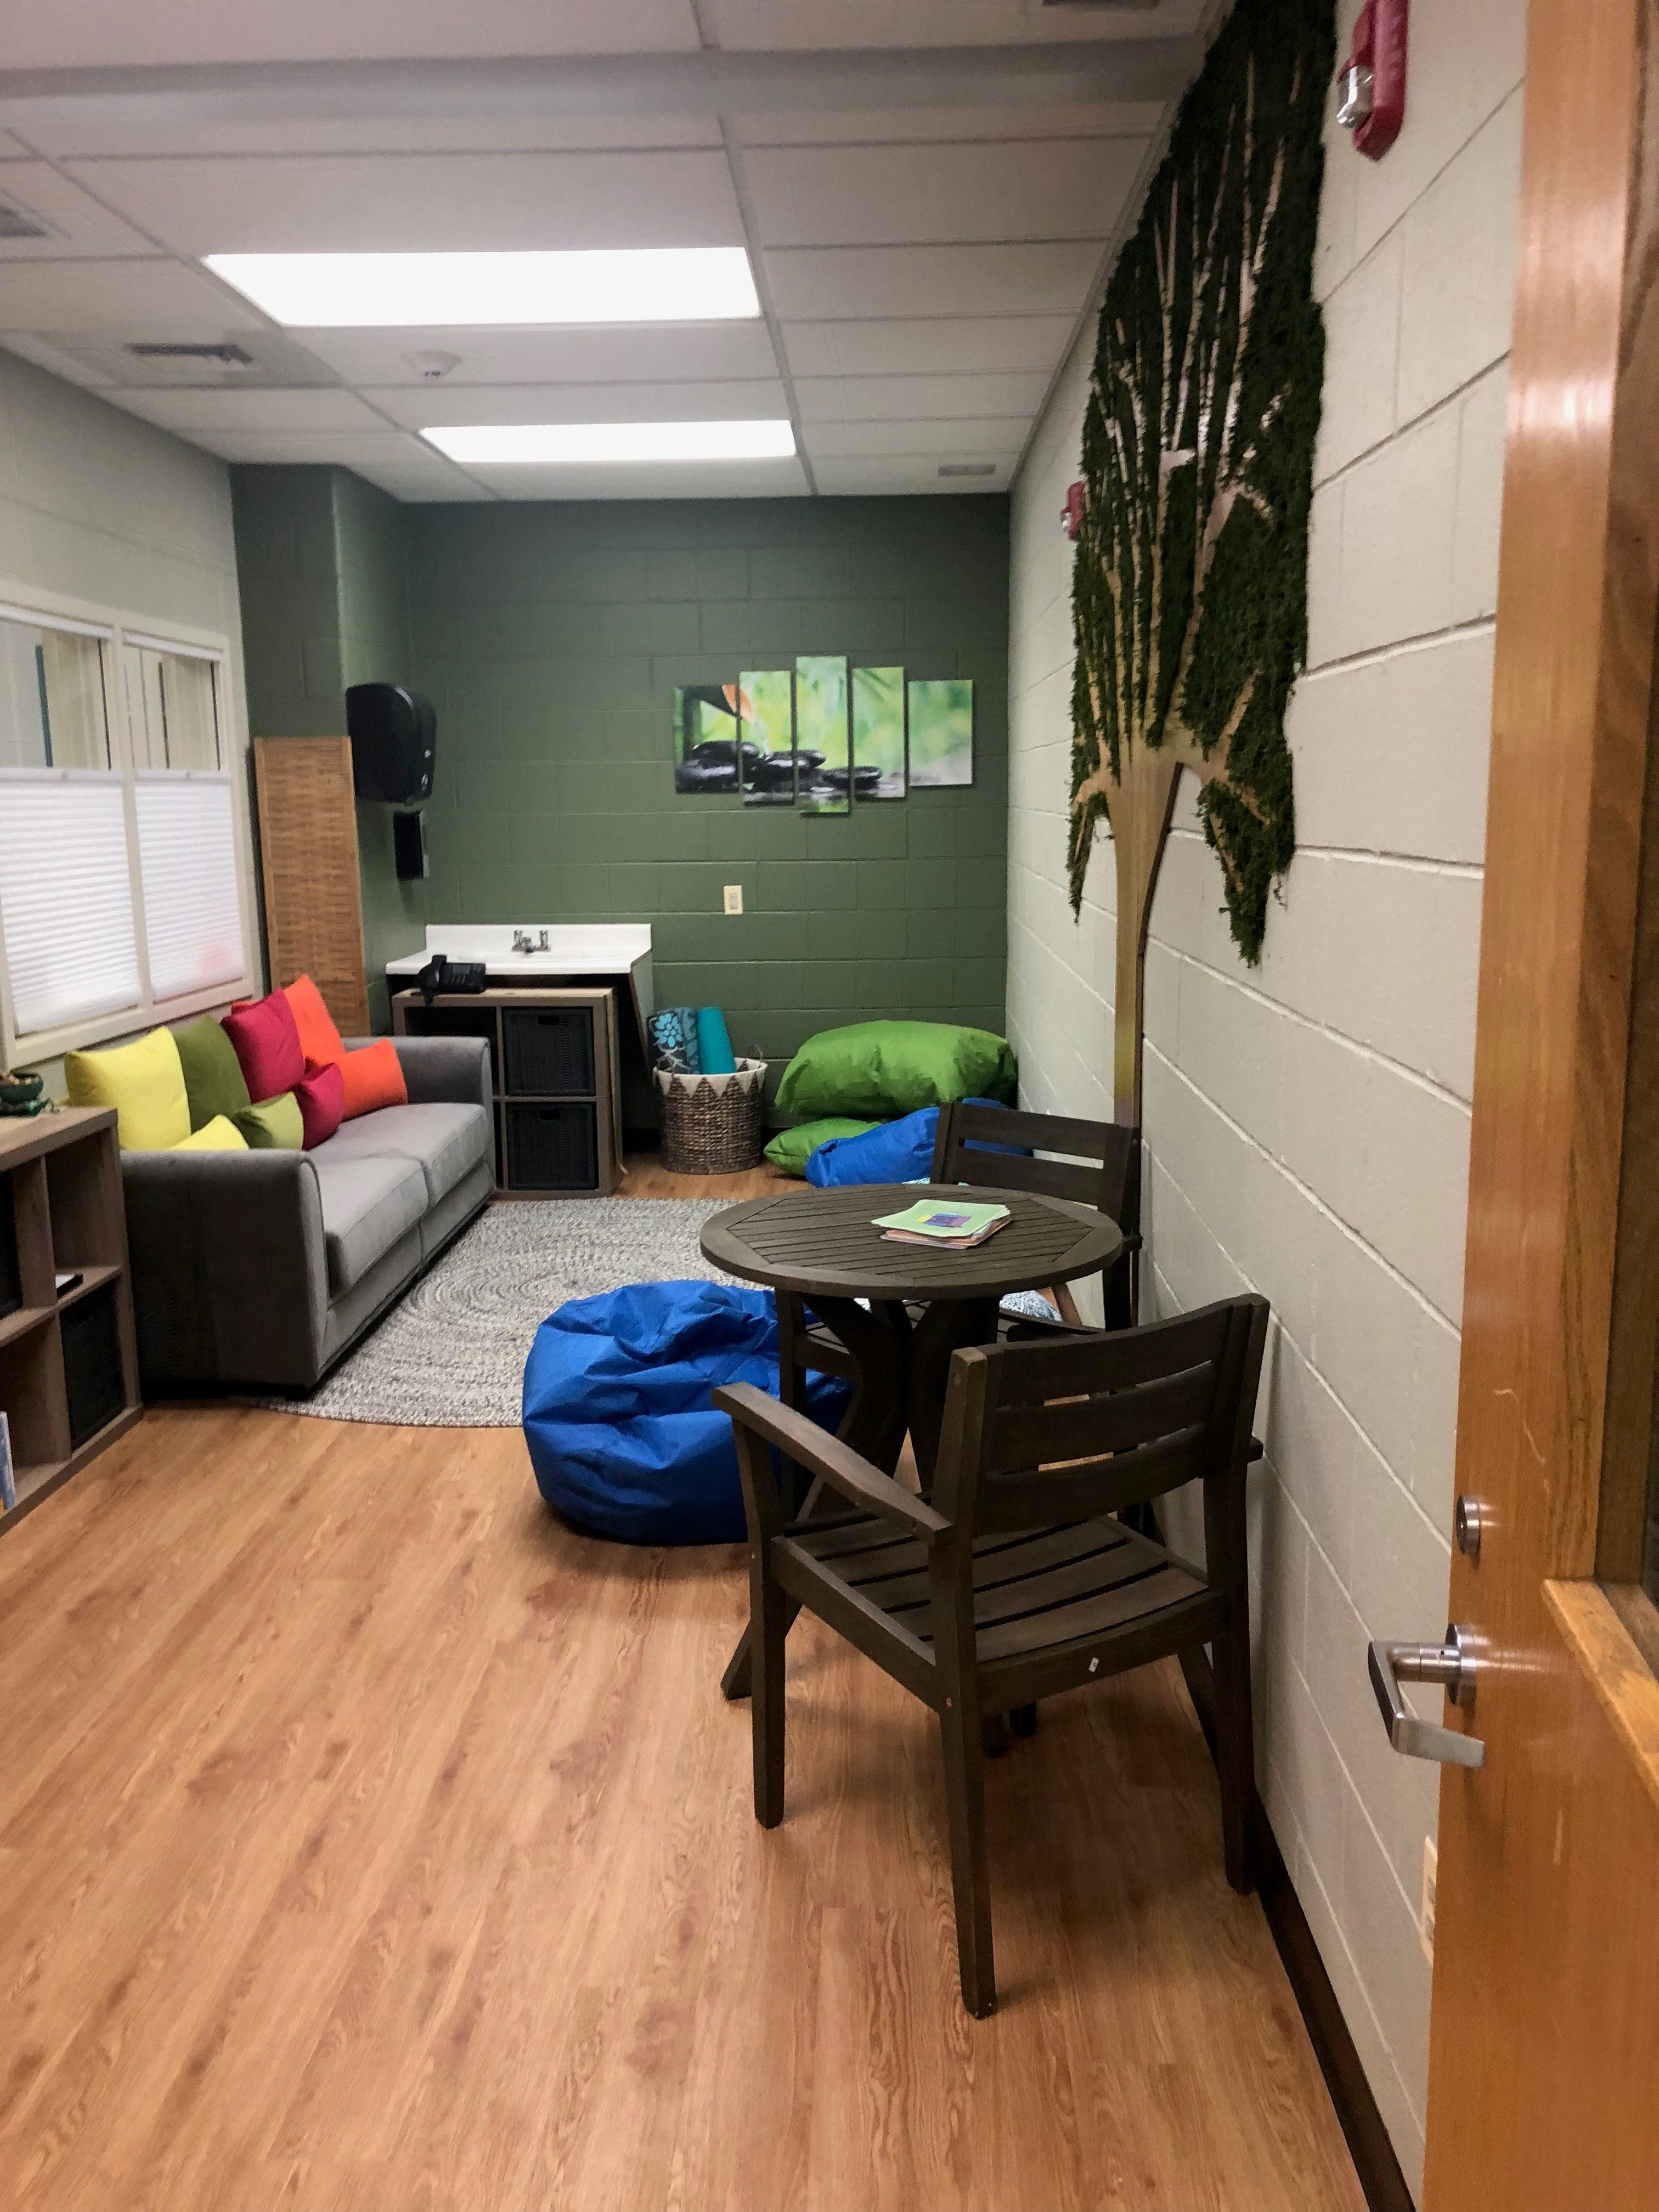 Haworth School Is All About Wellness With New Space